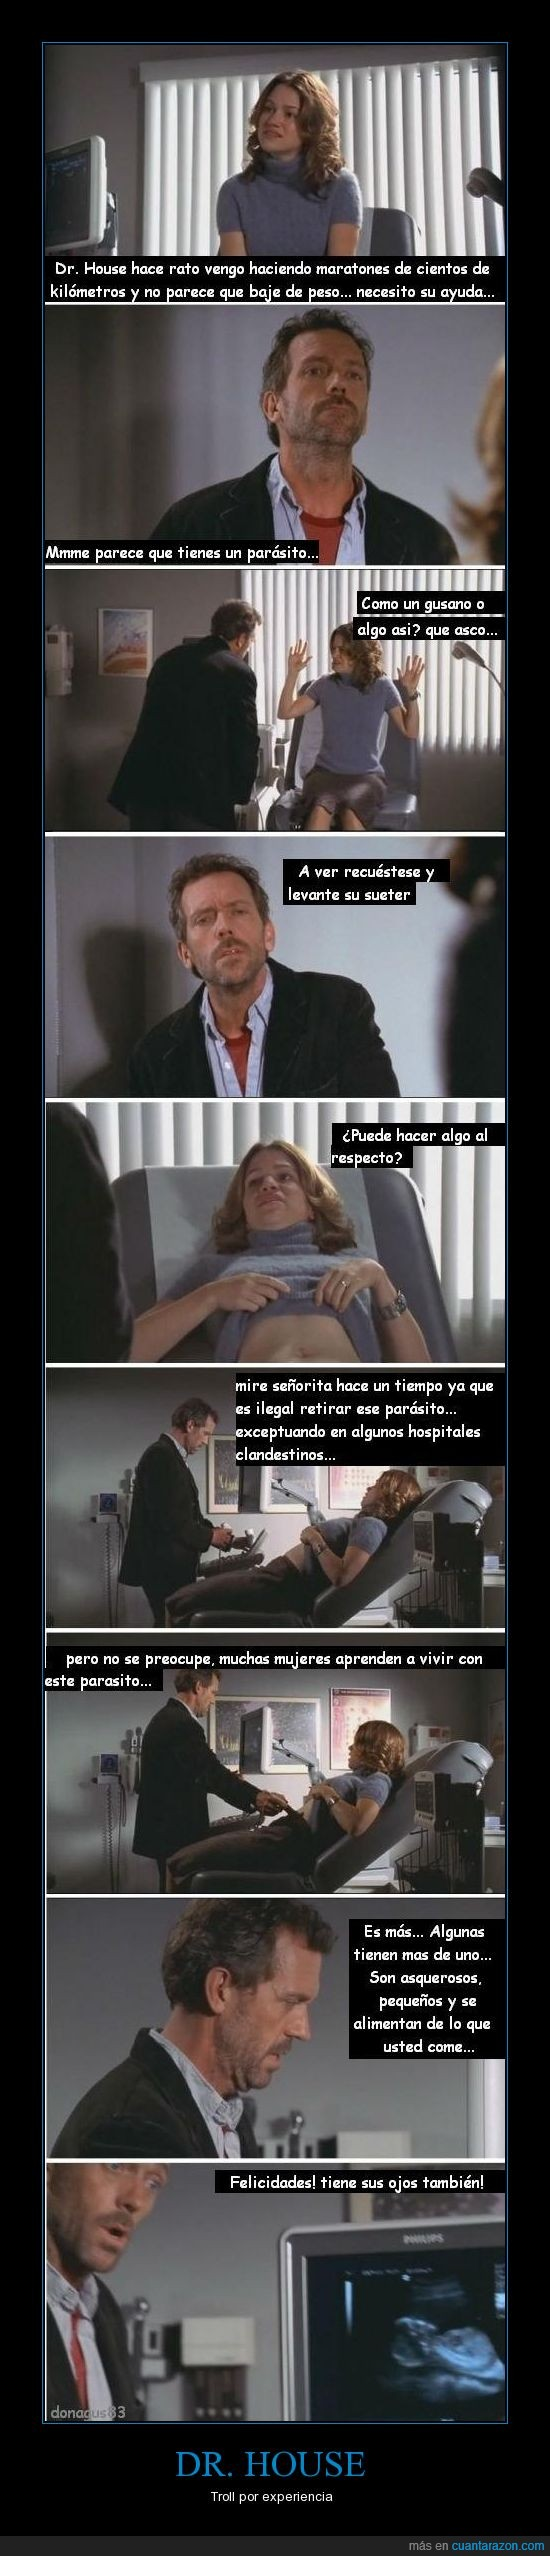 bebe,doctor,dr house,mujer,troll